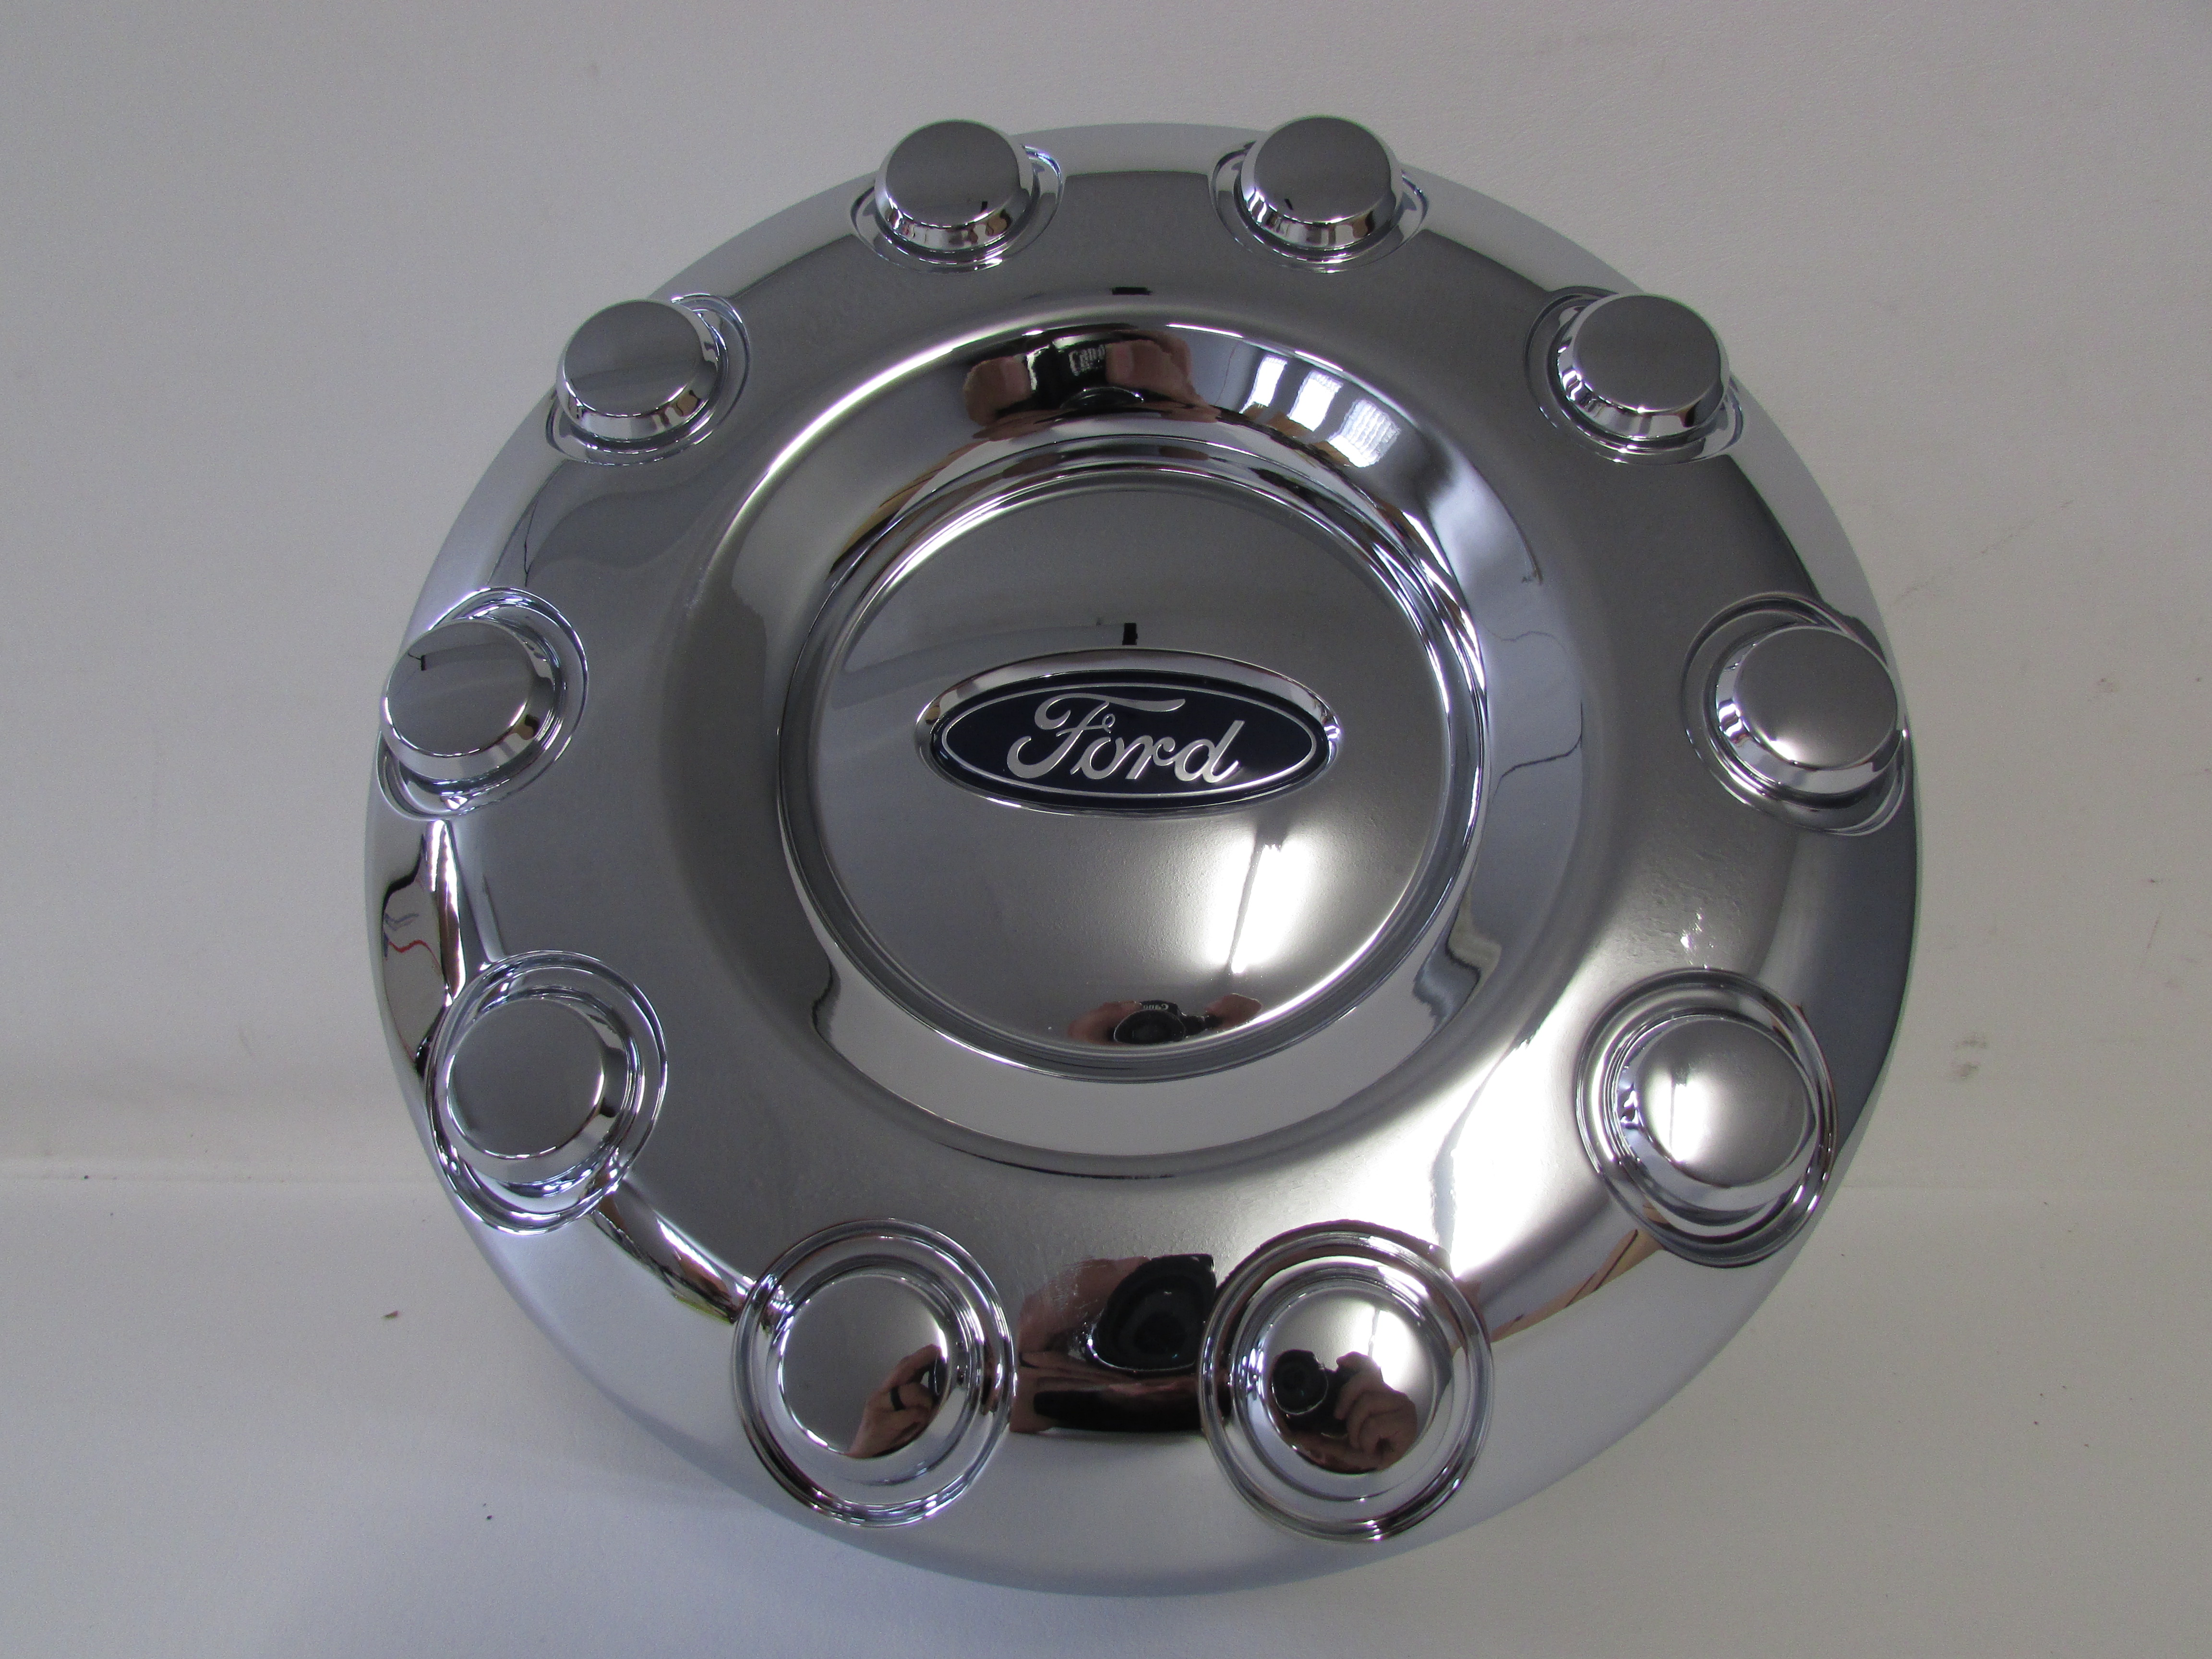 C F450 F550 19.5 10 Lug Front /& Rear Wheel Simulator ONE Set for Ford 05 Cover BA Products Phoenix USA NF25 Liner HUB Cap